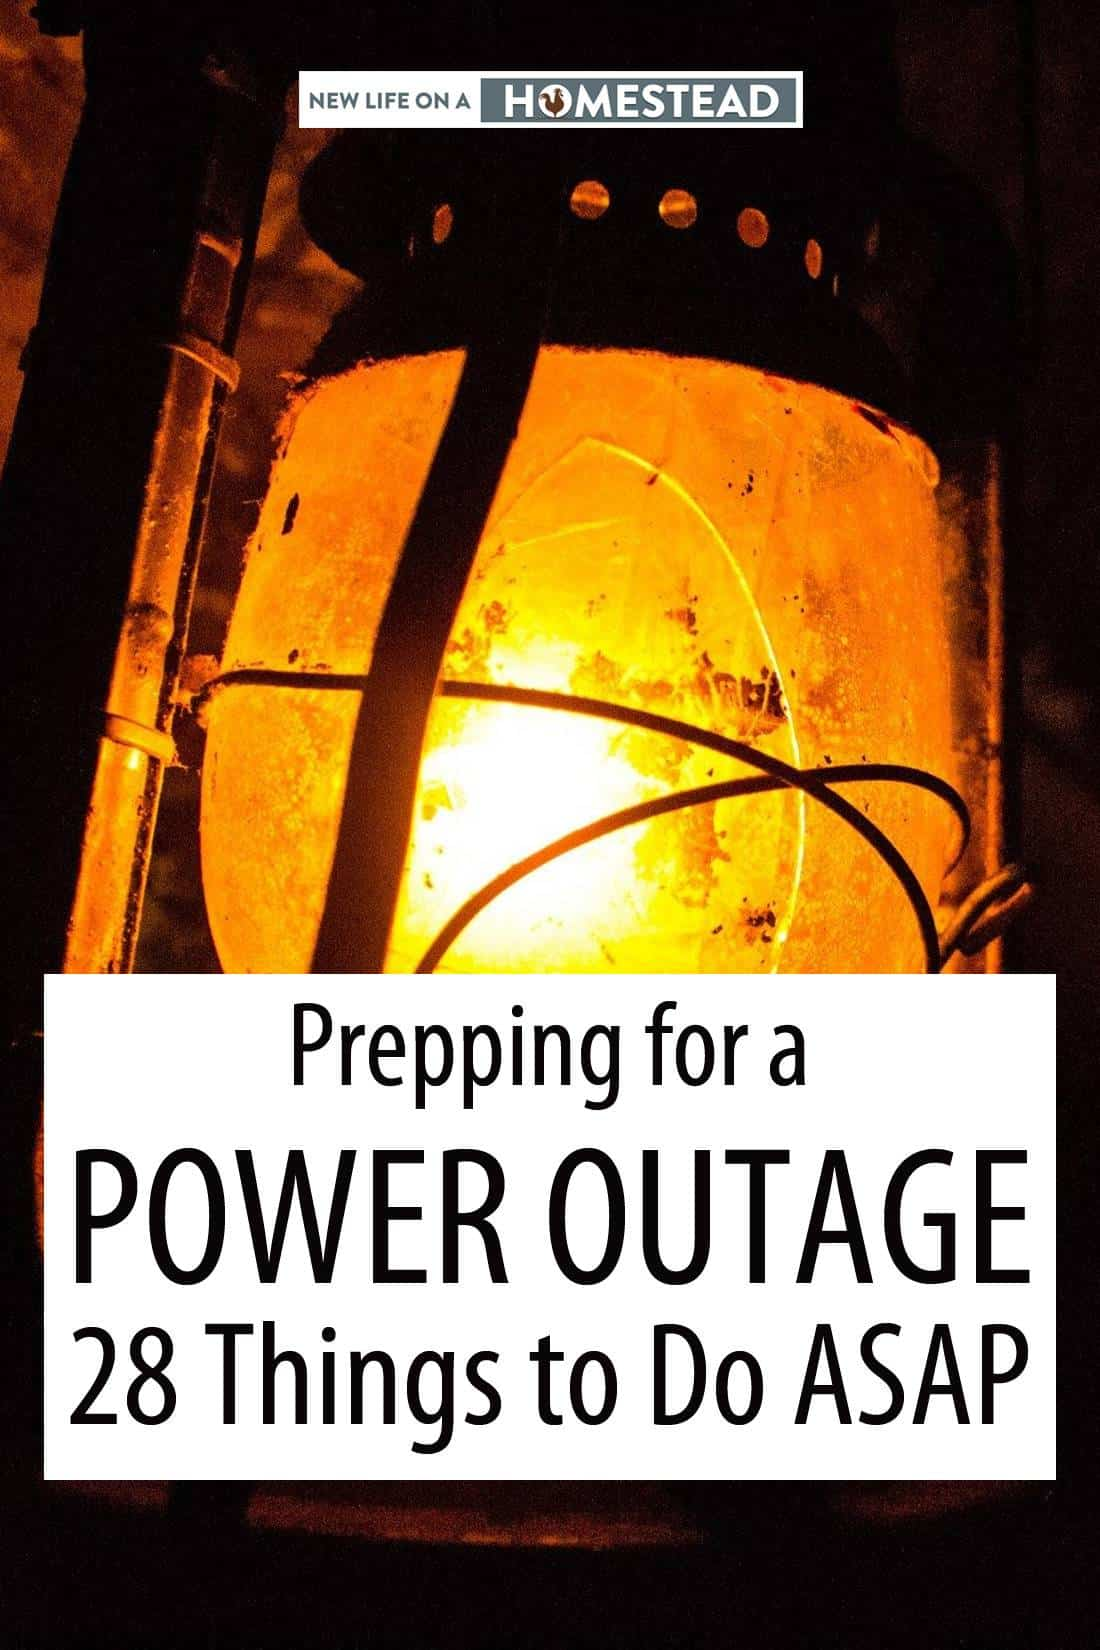 homestead power outage prepping pinterest